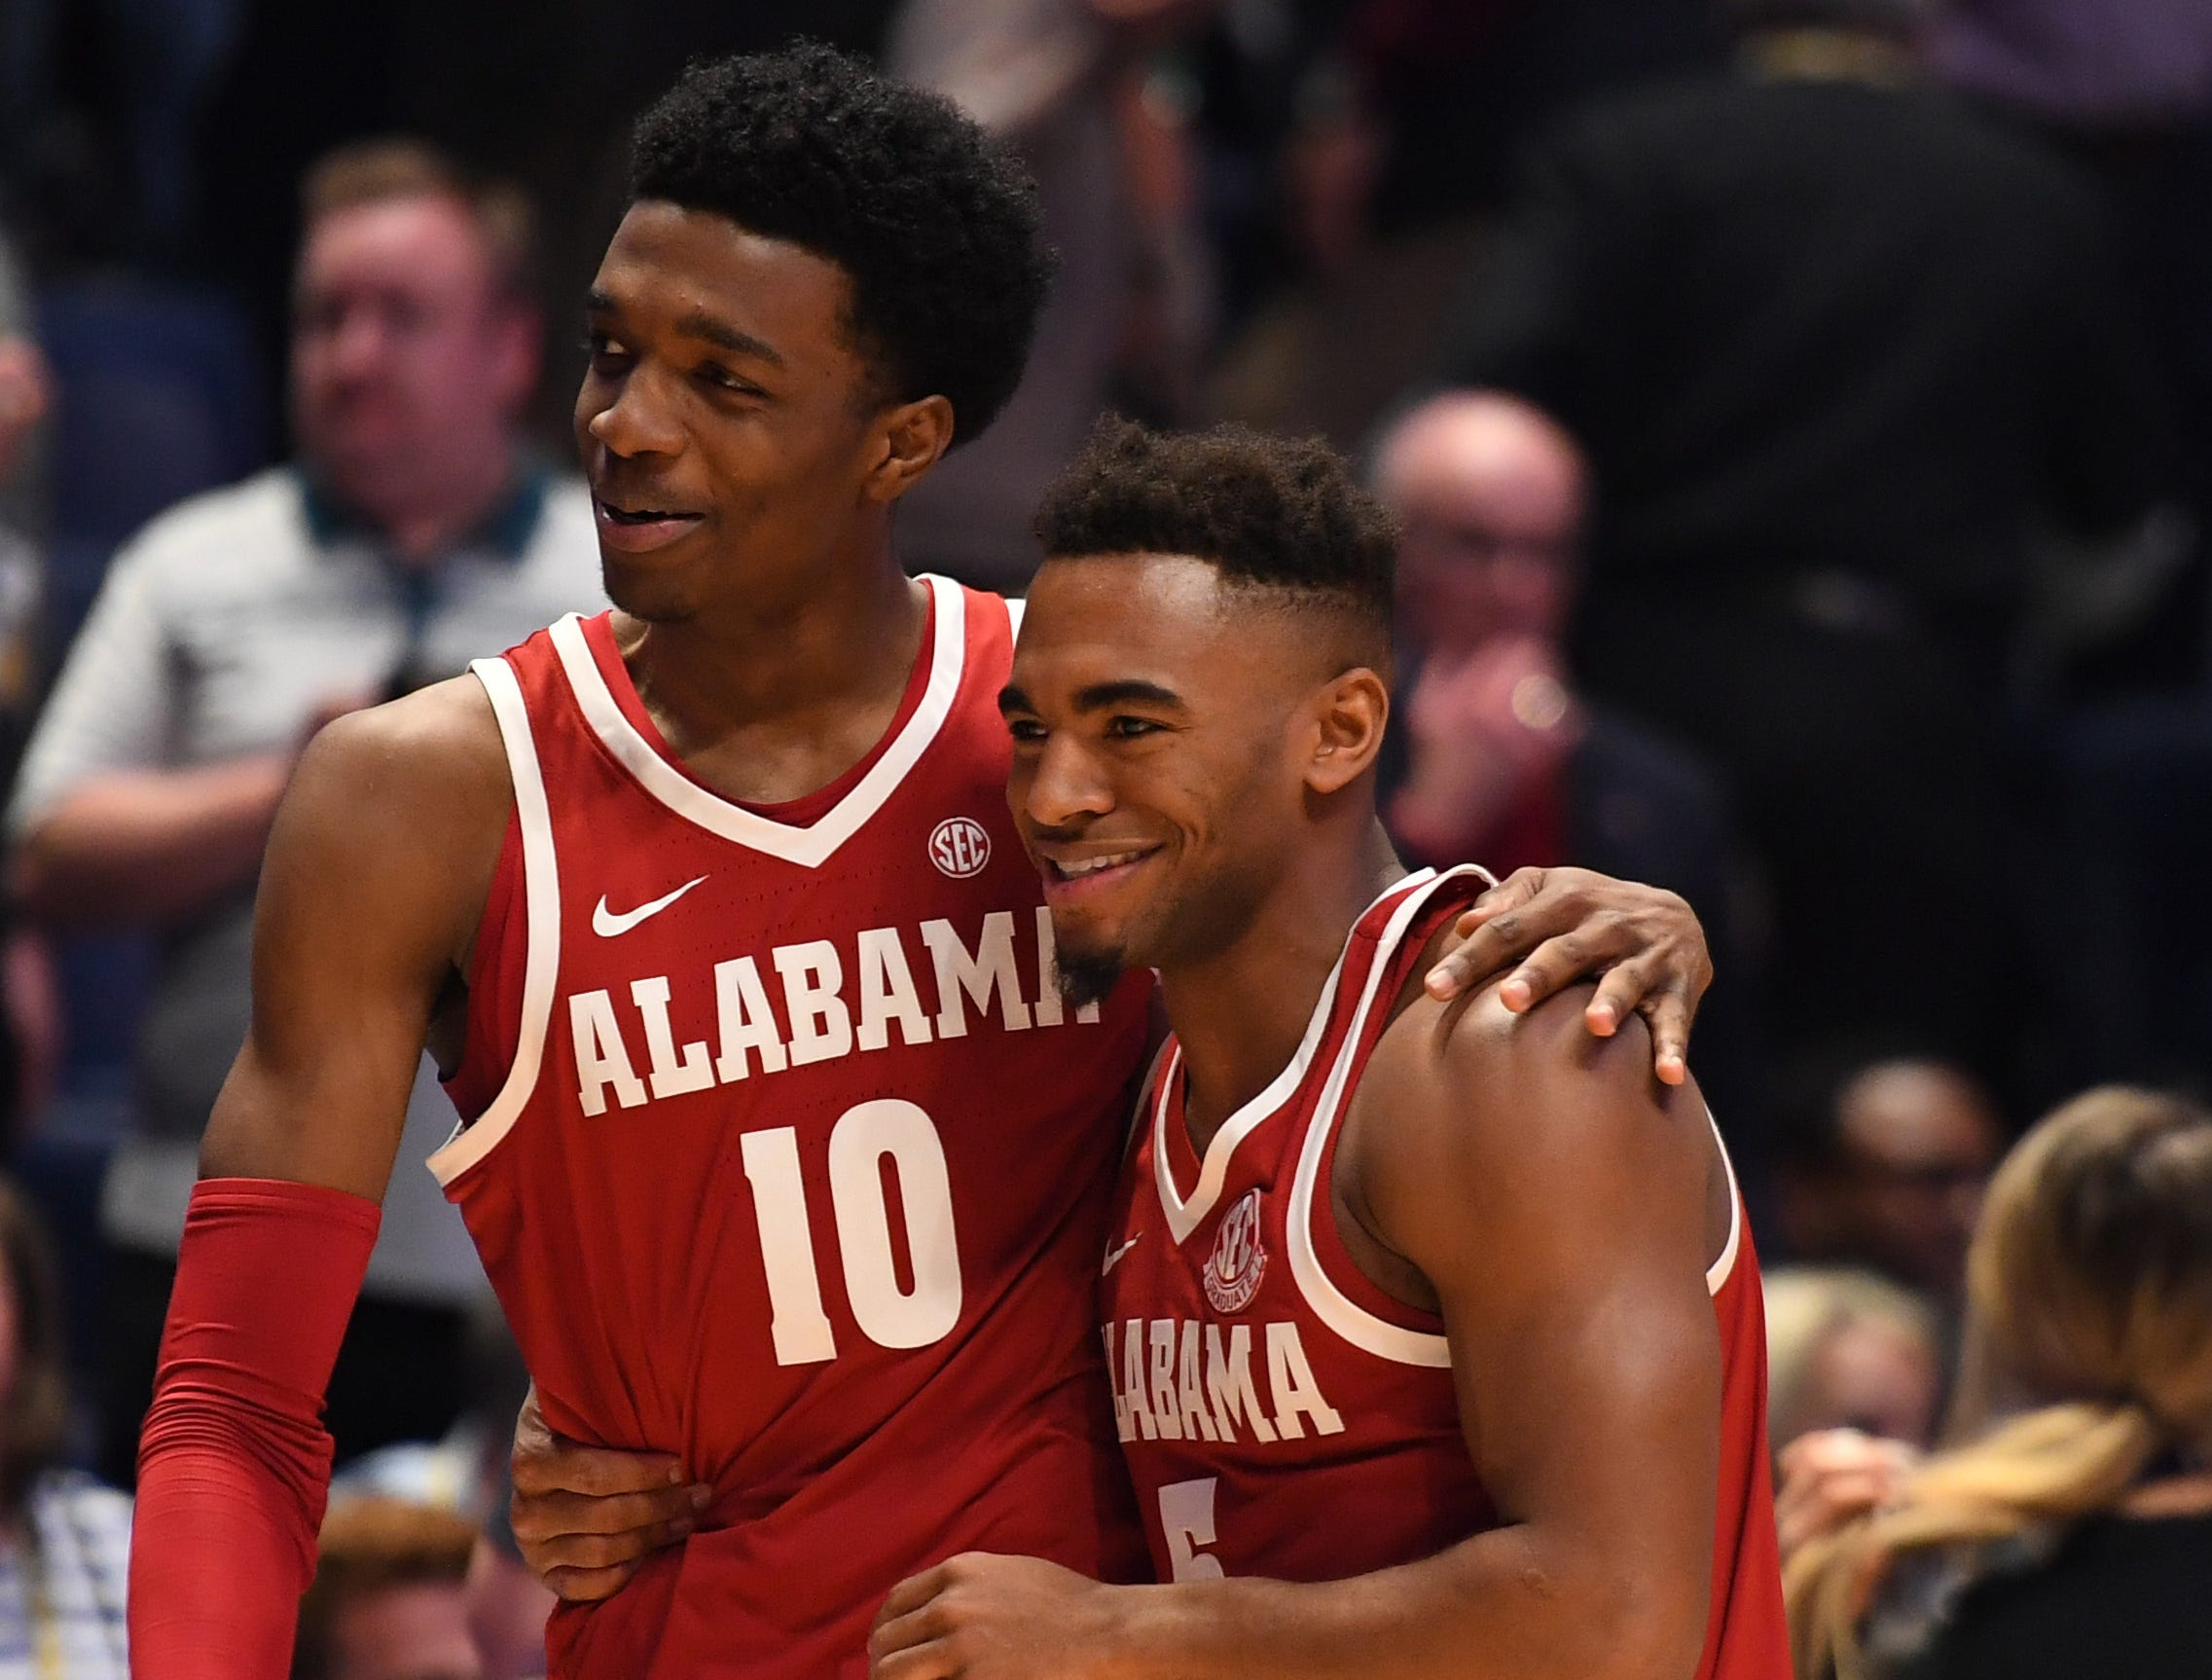 Mar 14, 2019; Nashville, TN, USA; Alabama Crimson Tide guard Herbert Jones (10) and Alabama Crimson Tide guard Avery Johnson Jr. (5) celebrate after a win against the Mississippi Rebels in the SEC conference tournament at Bridgestone Arena. Mandatory Credit: Christopher Hanewinckel-USA TODAY Sports